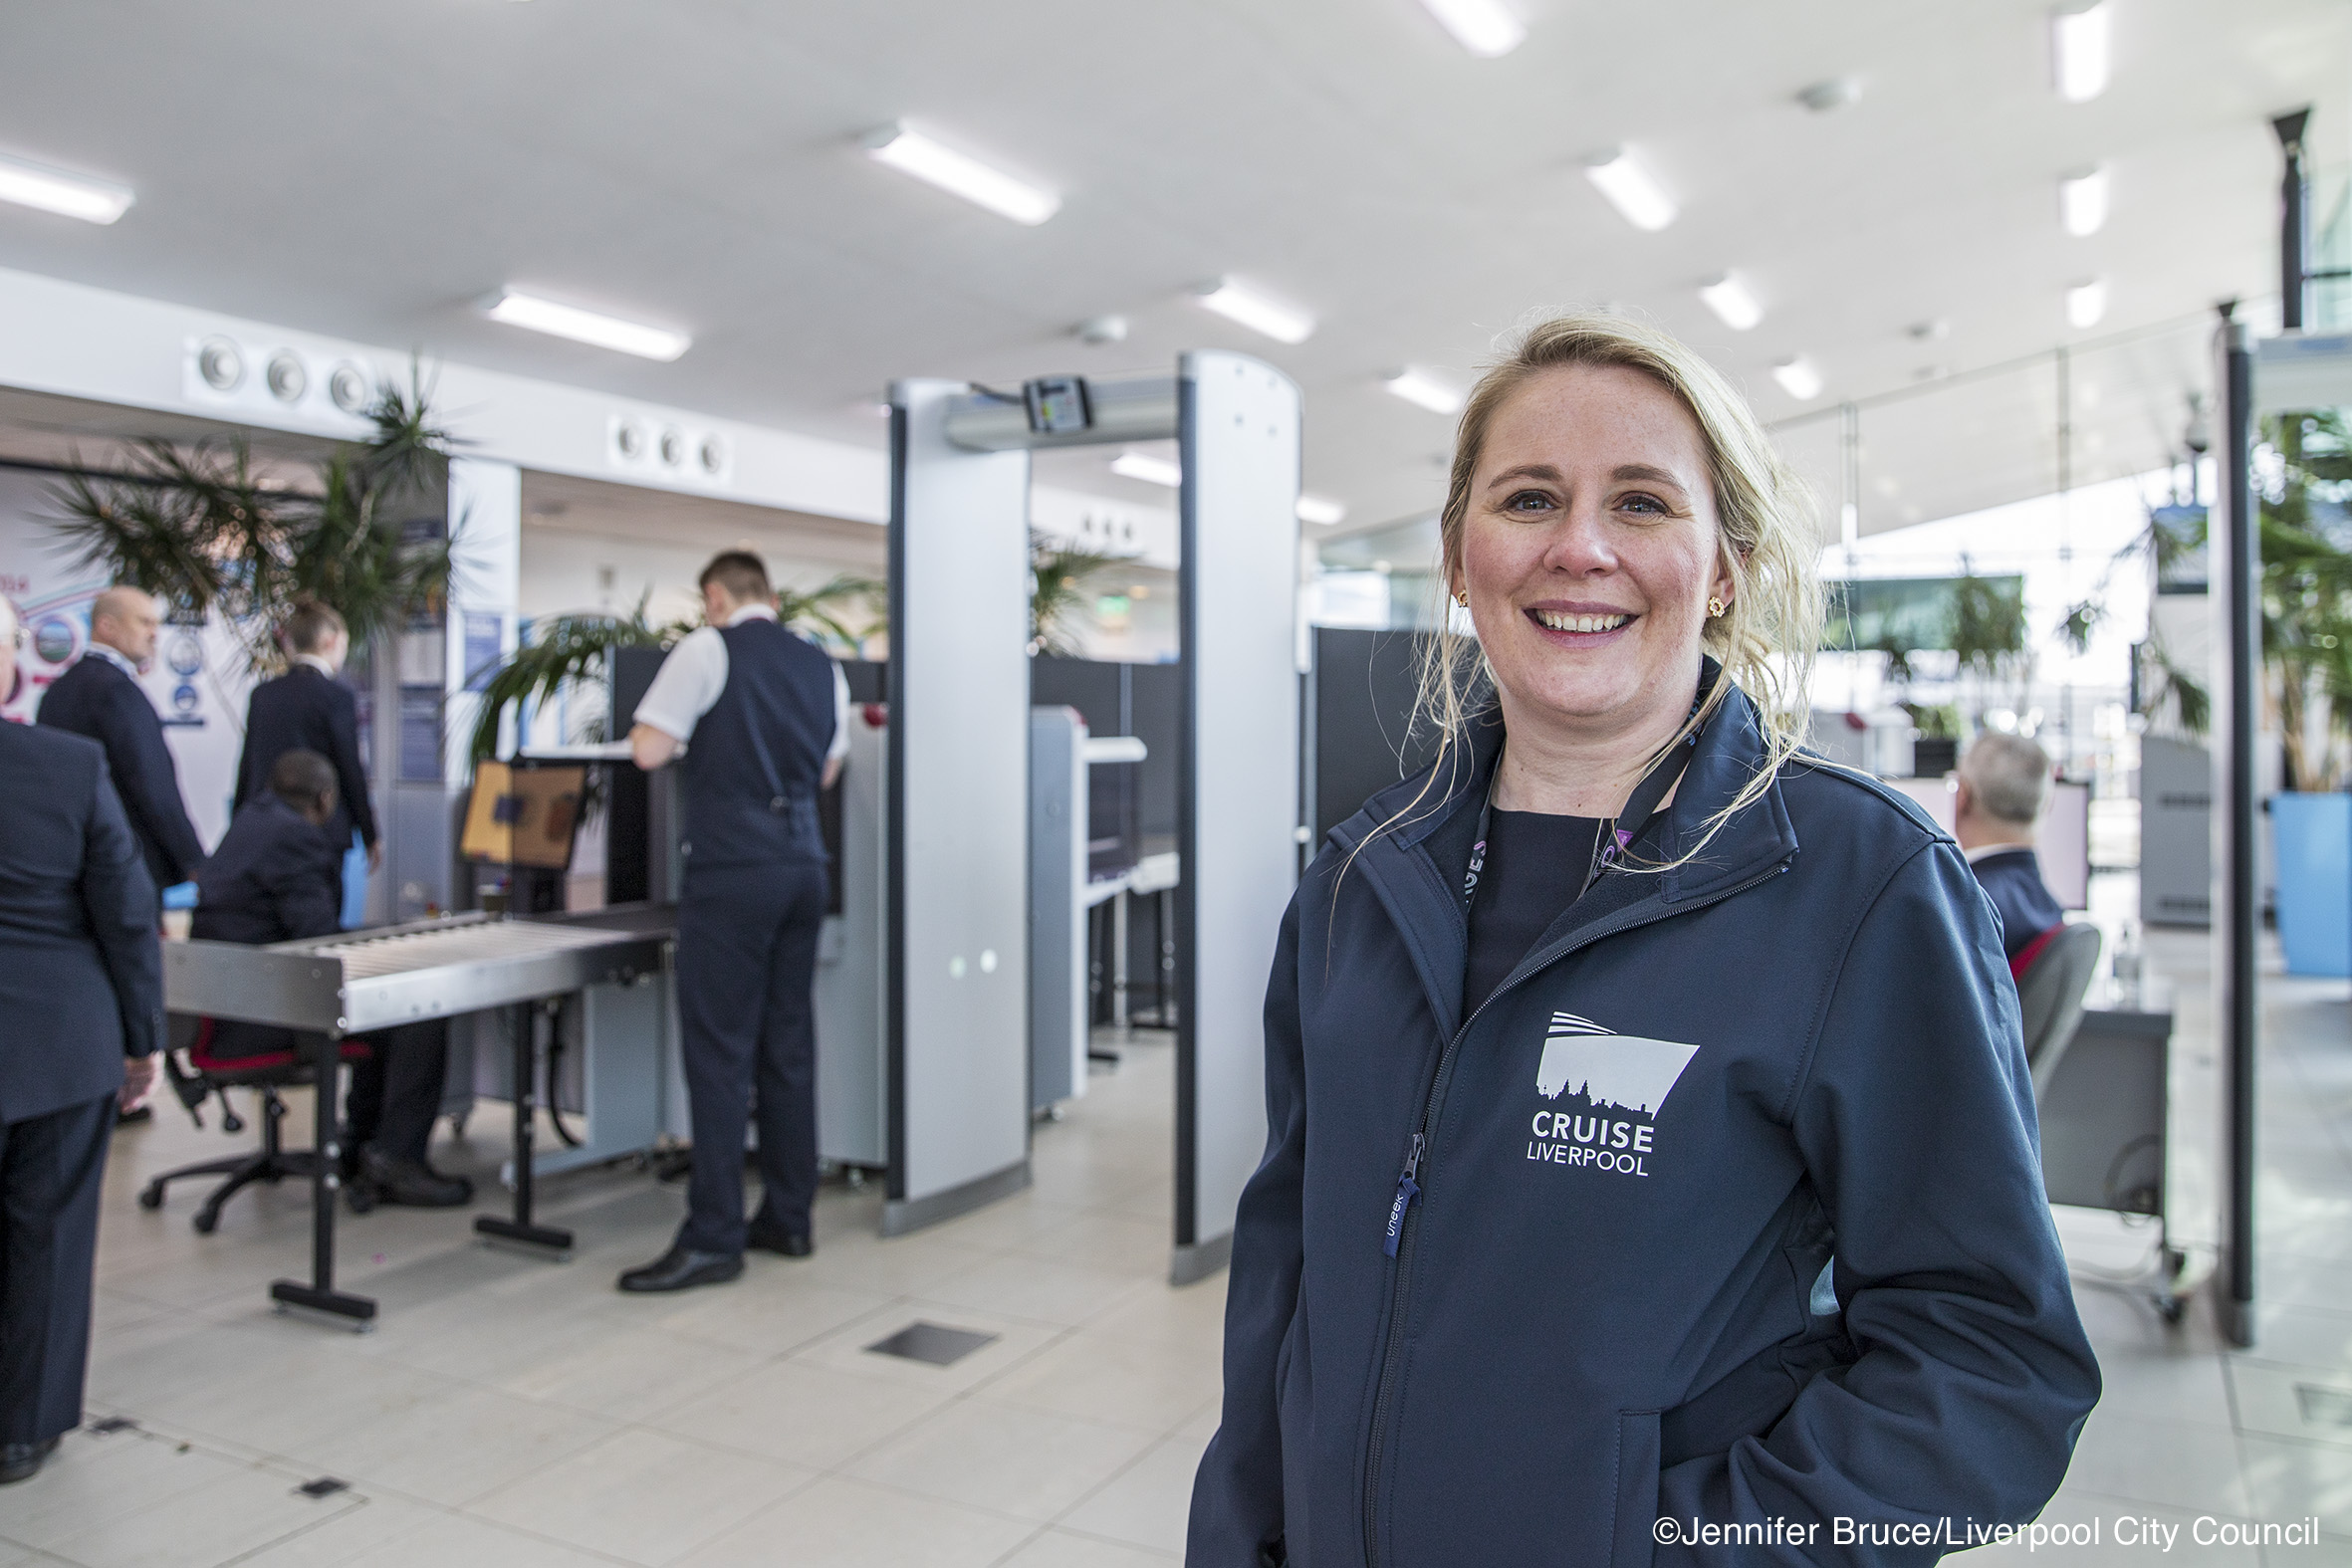 Kate Green, Passenger Operations Manager